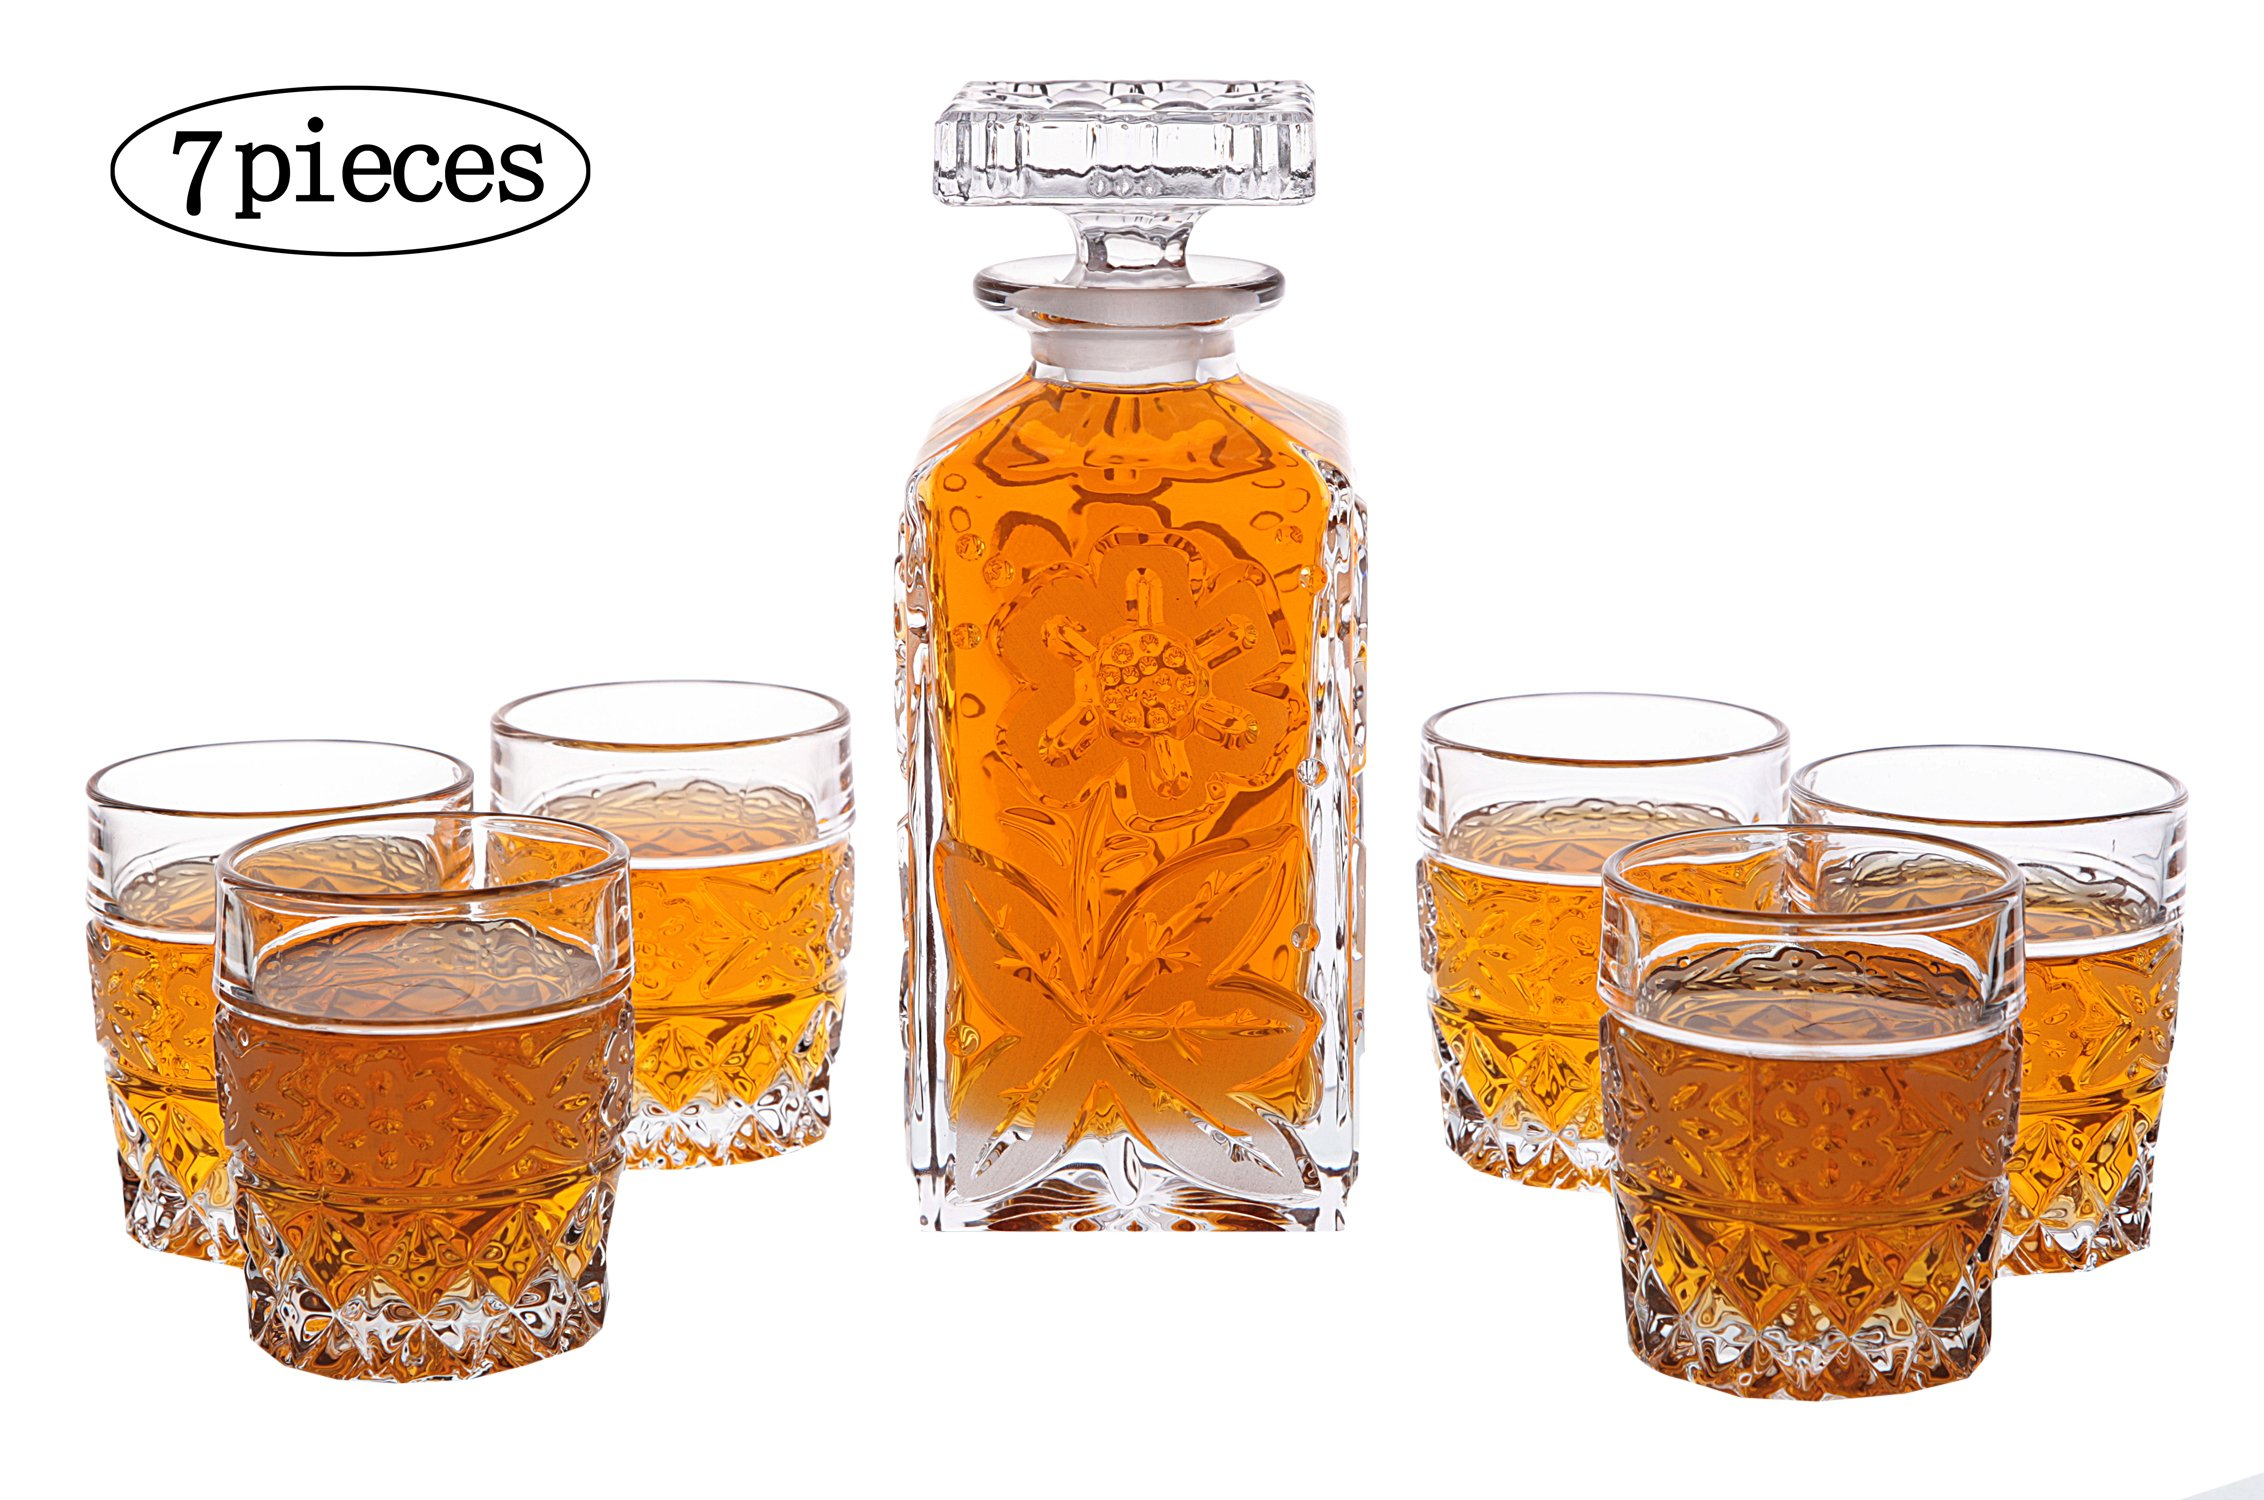 Whiskey Decanter And Glasses Set of 7 Piece, Personalized Crystal Decanter & Crafted Crystal Glasses Set for Wine,Scotch Liquor,Irish Whisky, Bourbon or Brandy.Perfect Whiskey Liquor Fan Gift.